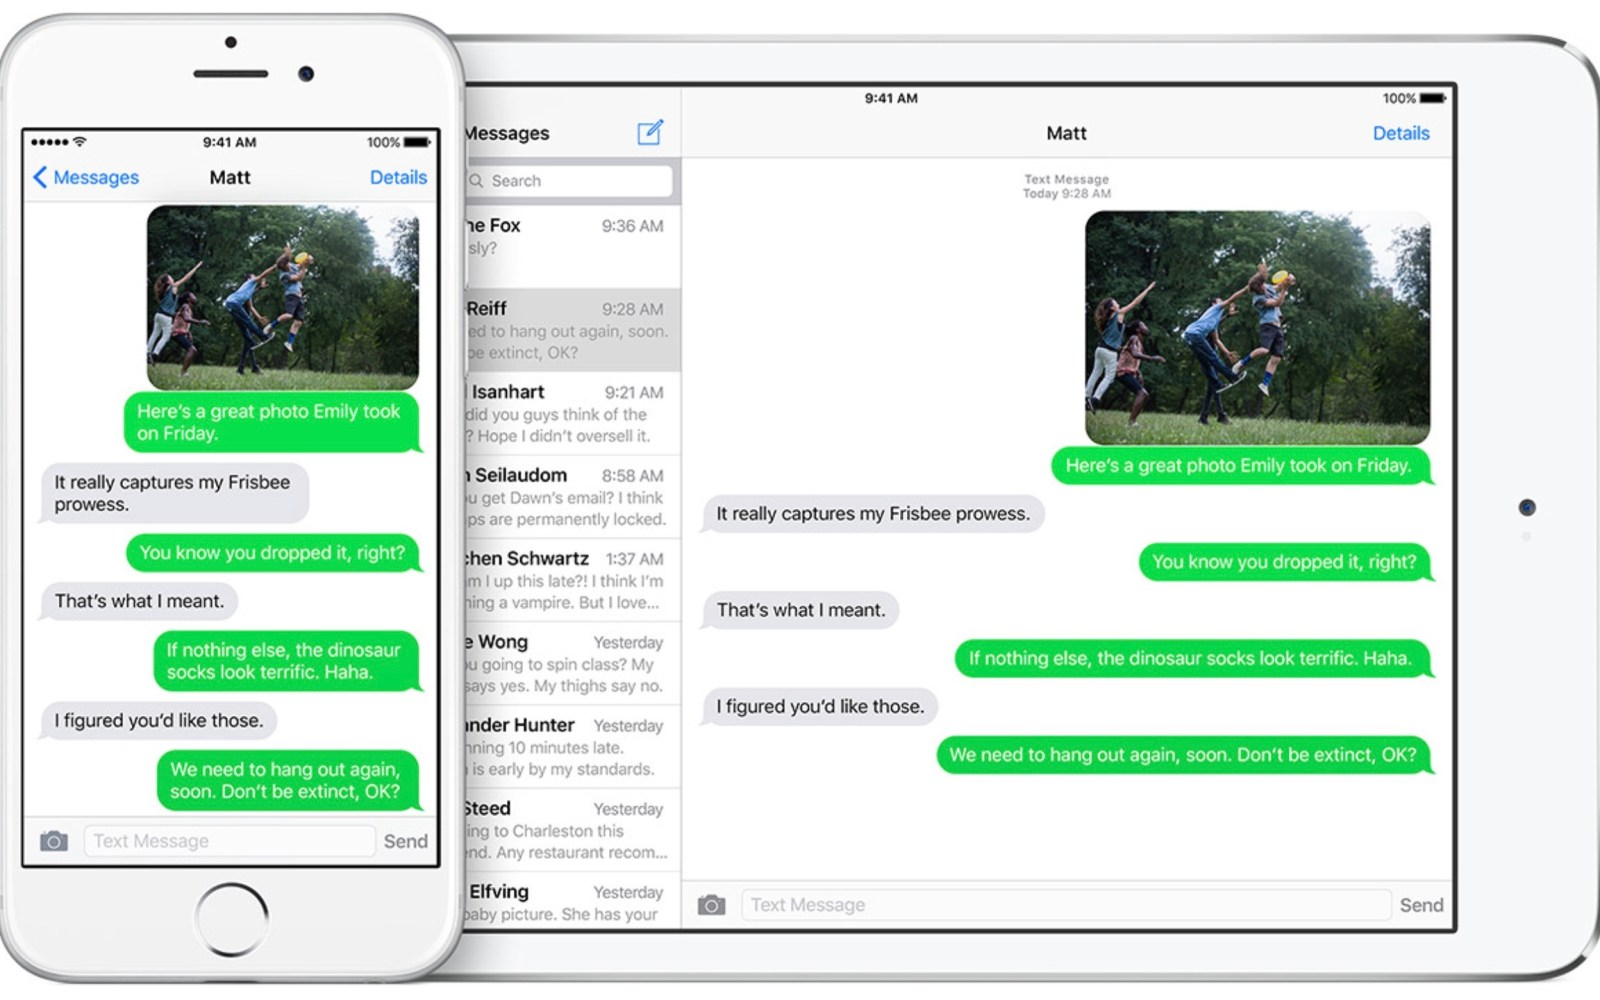 iOS 9 How-To: Quickly delete multiple images in Messages to free up space without losing your conversations